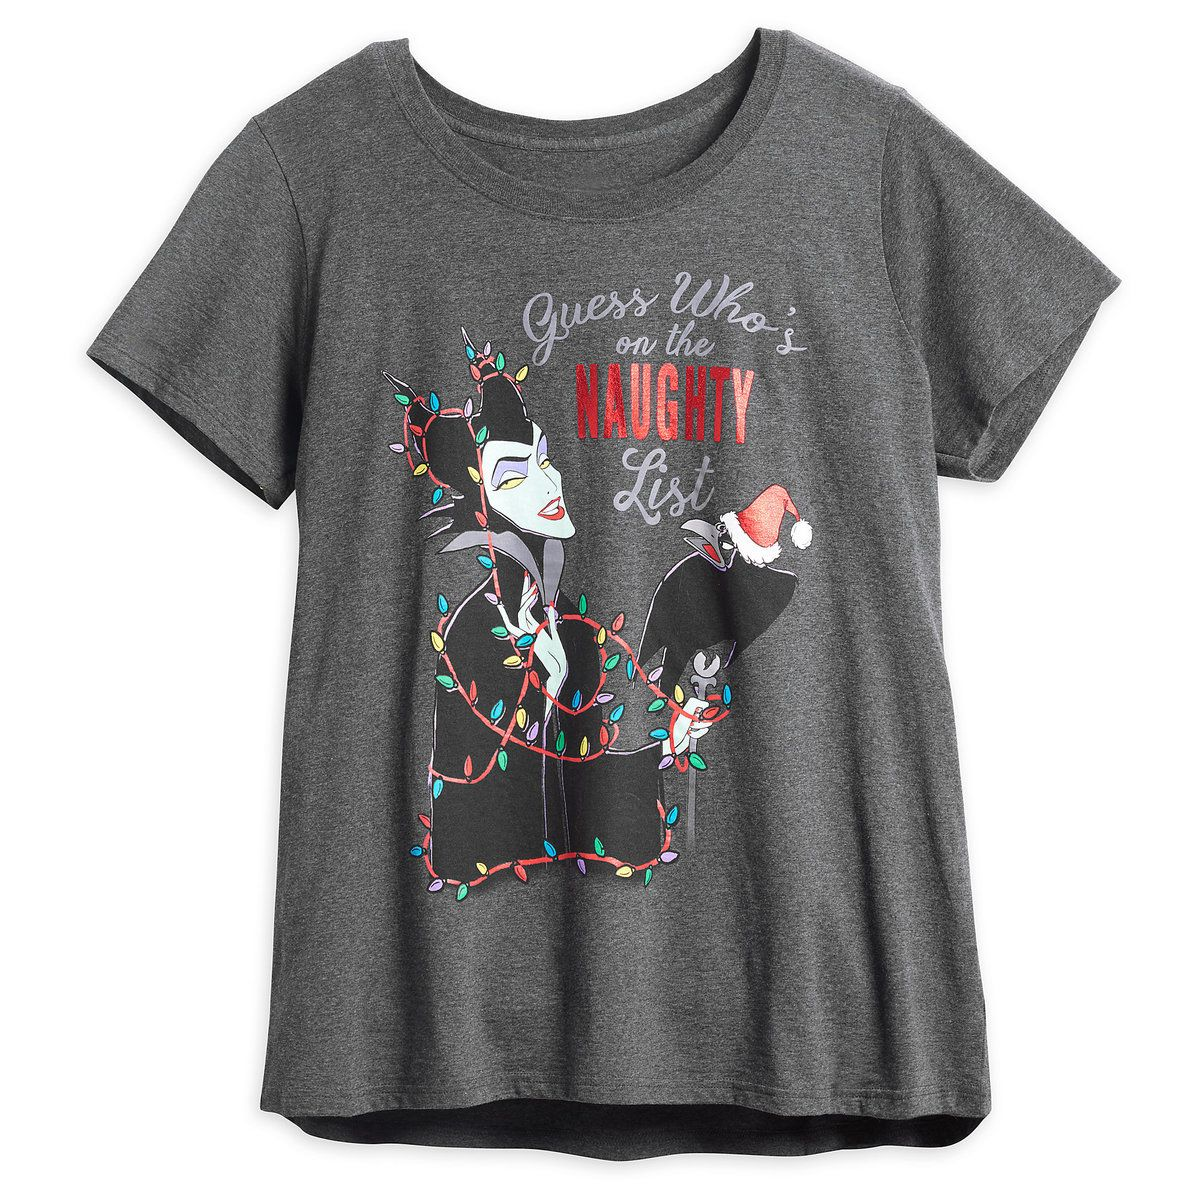 29d9806b749 Maleficent Holiday T-Shirt for Women - Plus Size